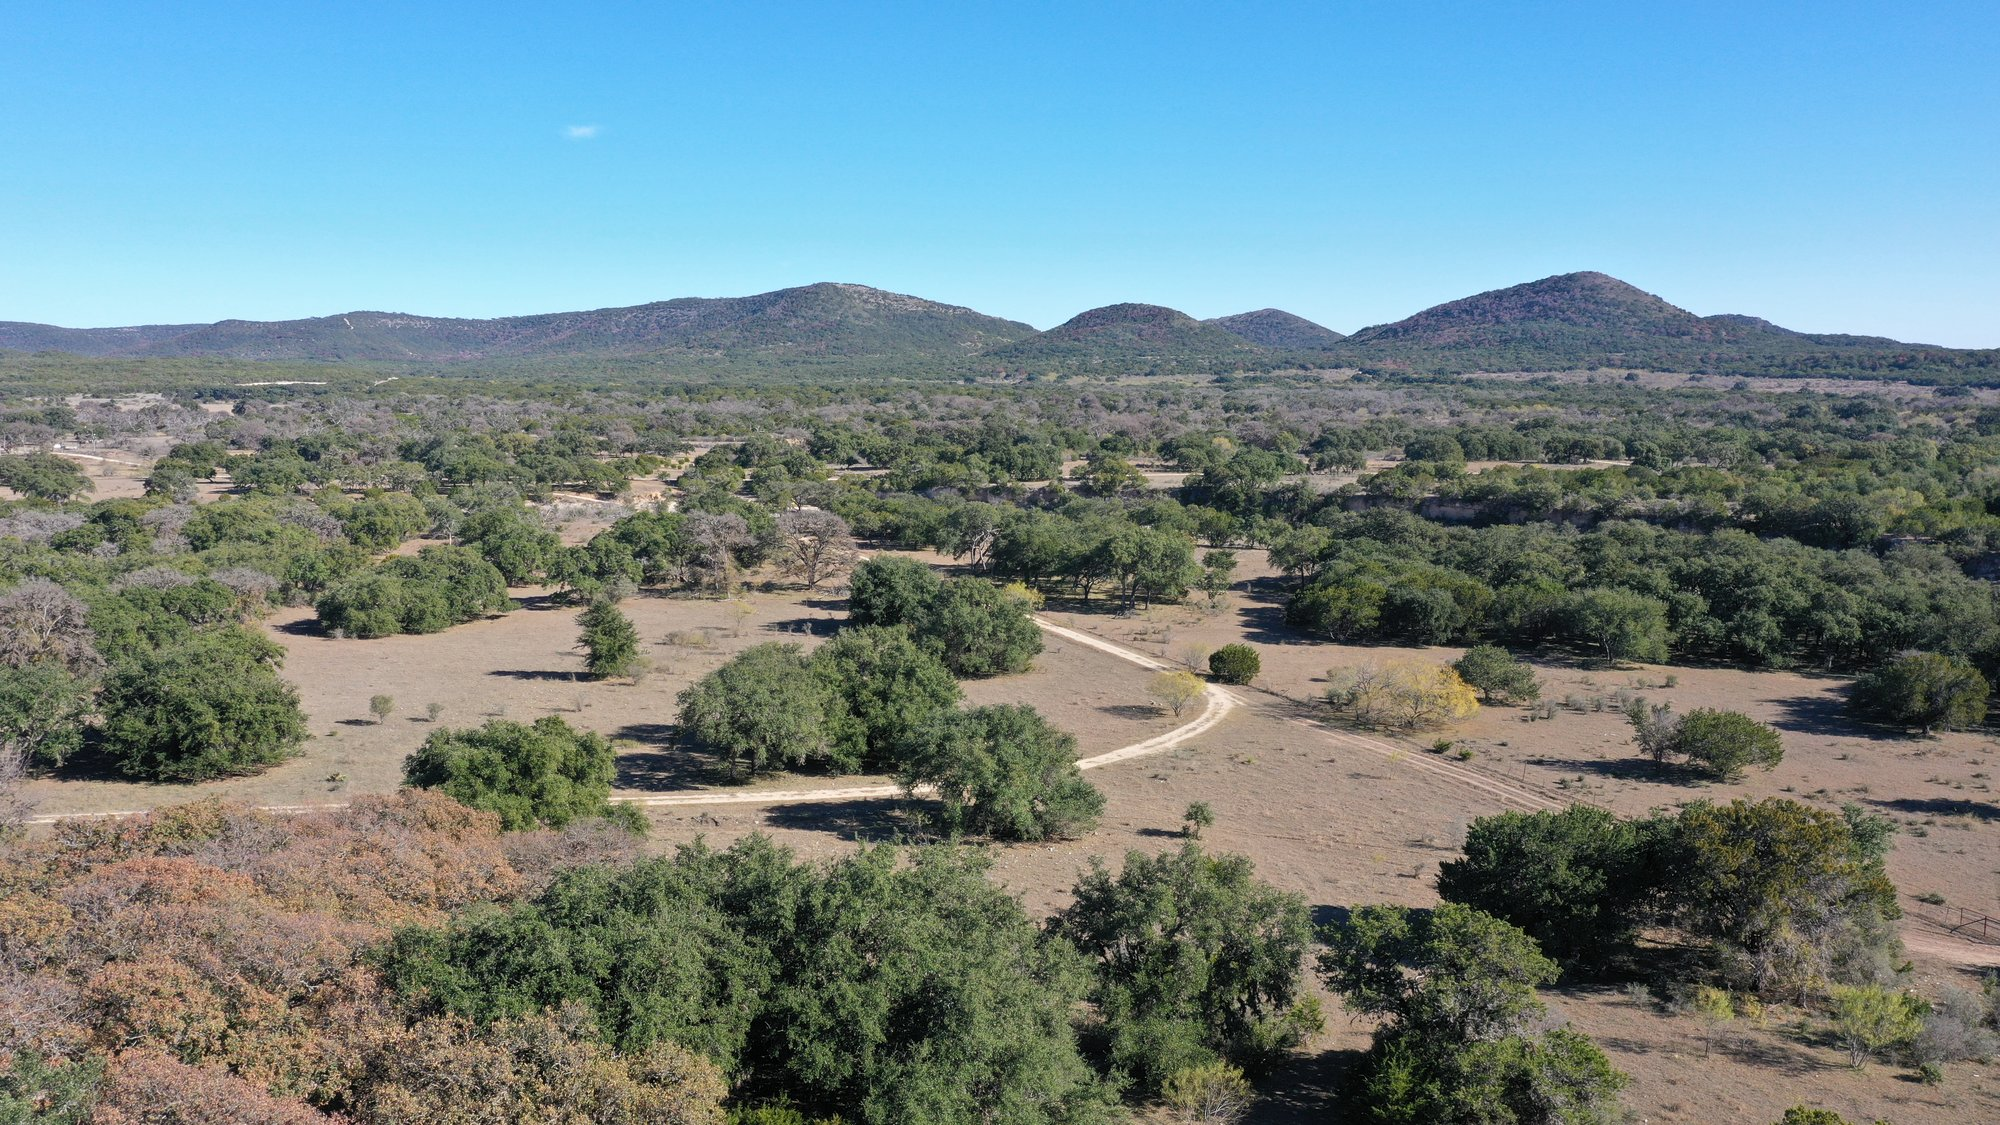 A view of the Texas hill country near Tarpley, Texas